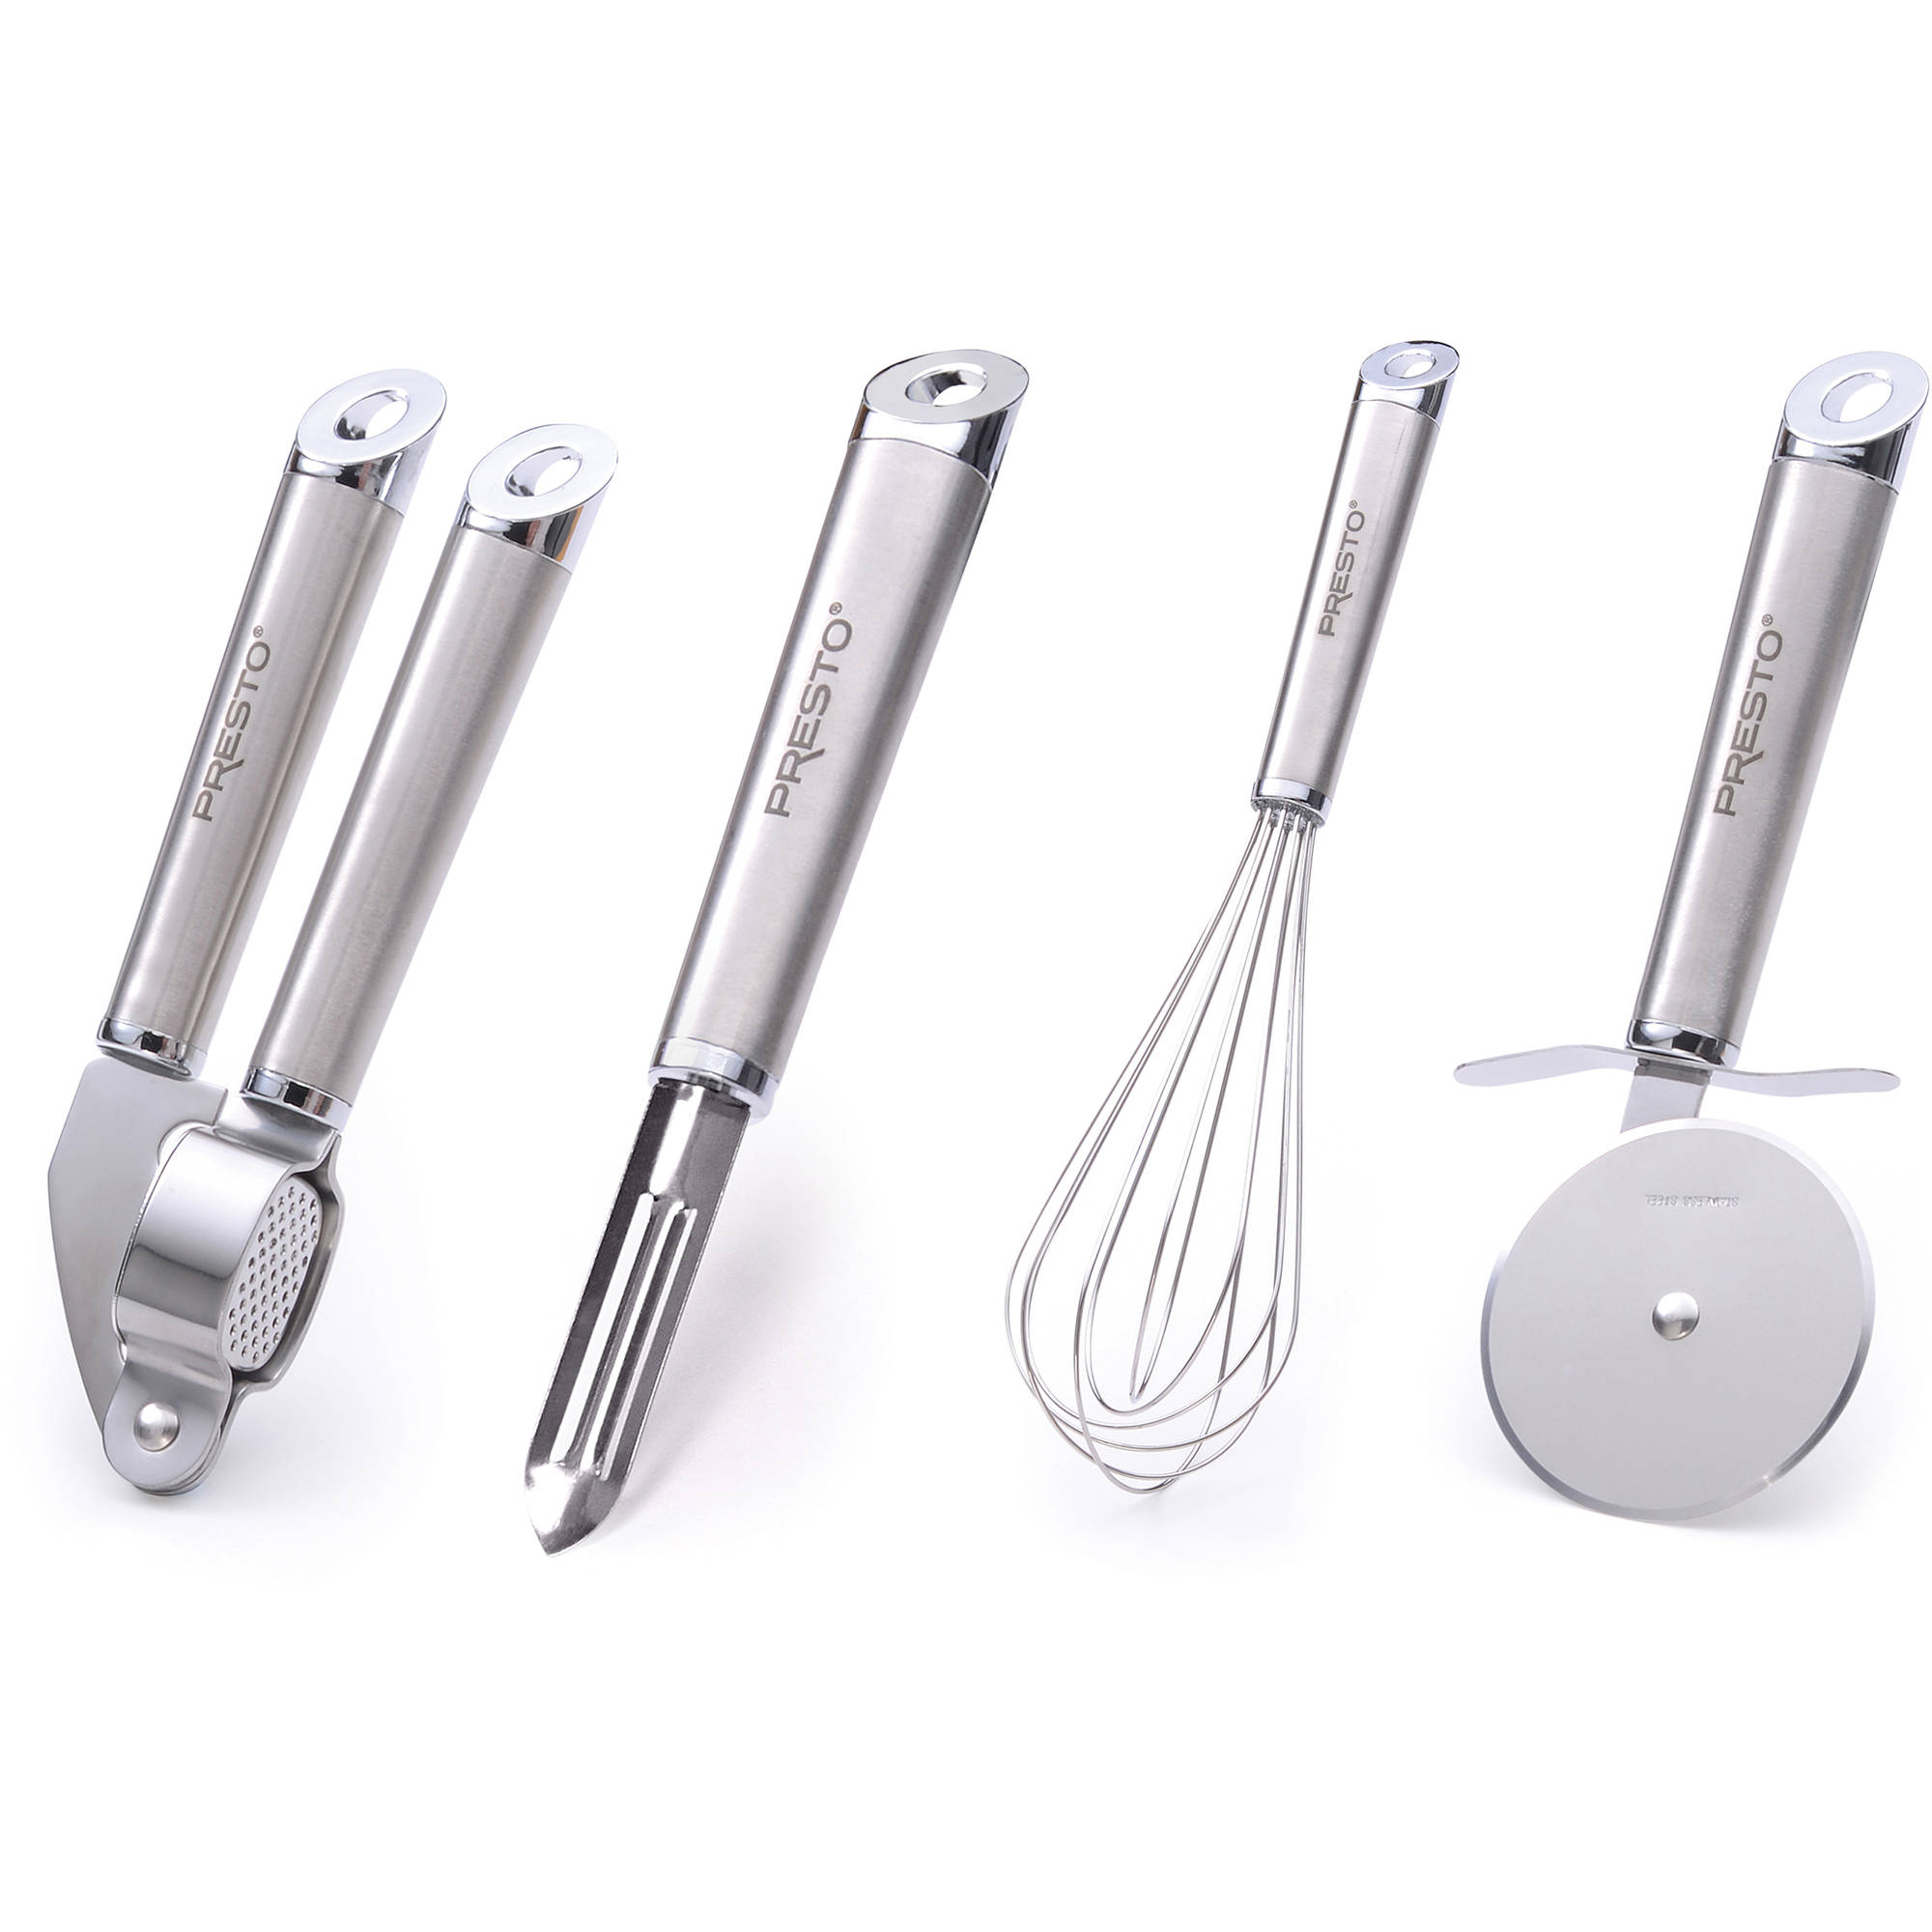 Presto 4-Piece Stainless Steel Gadget Set